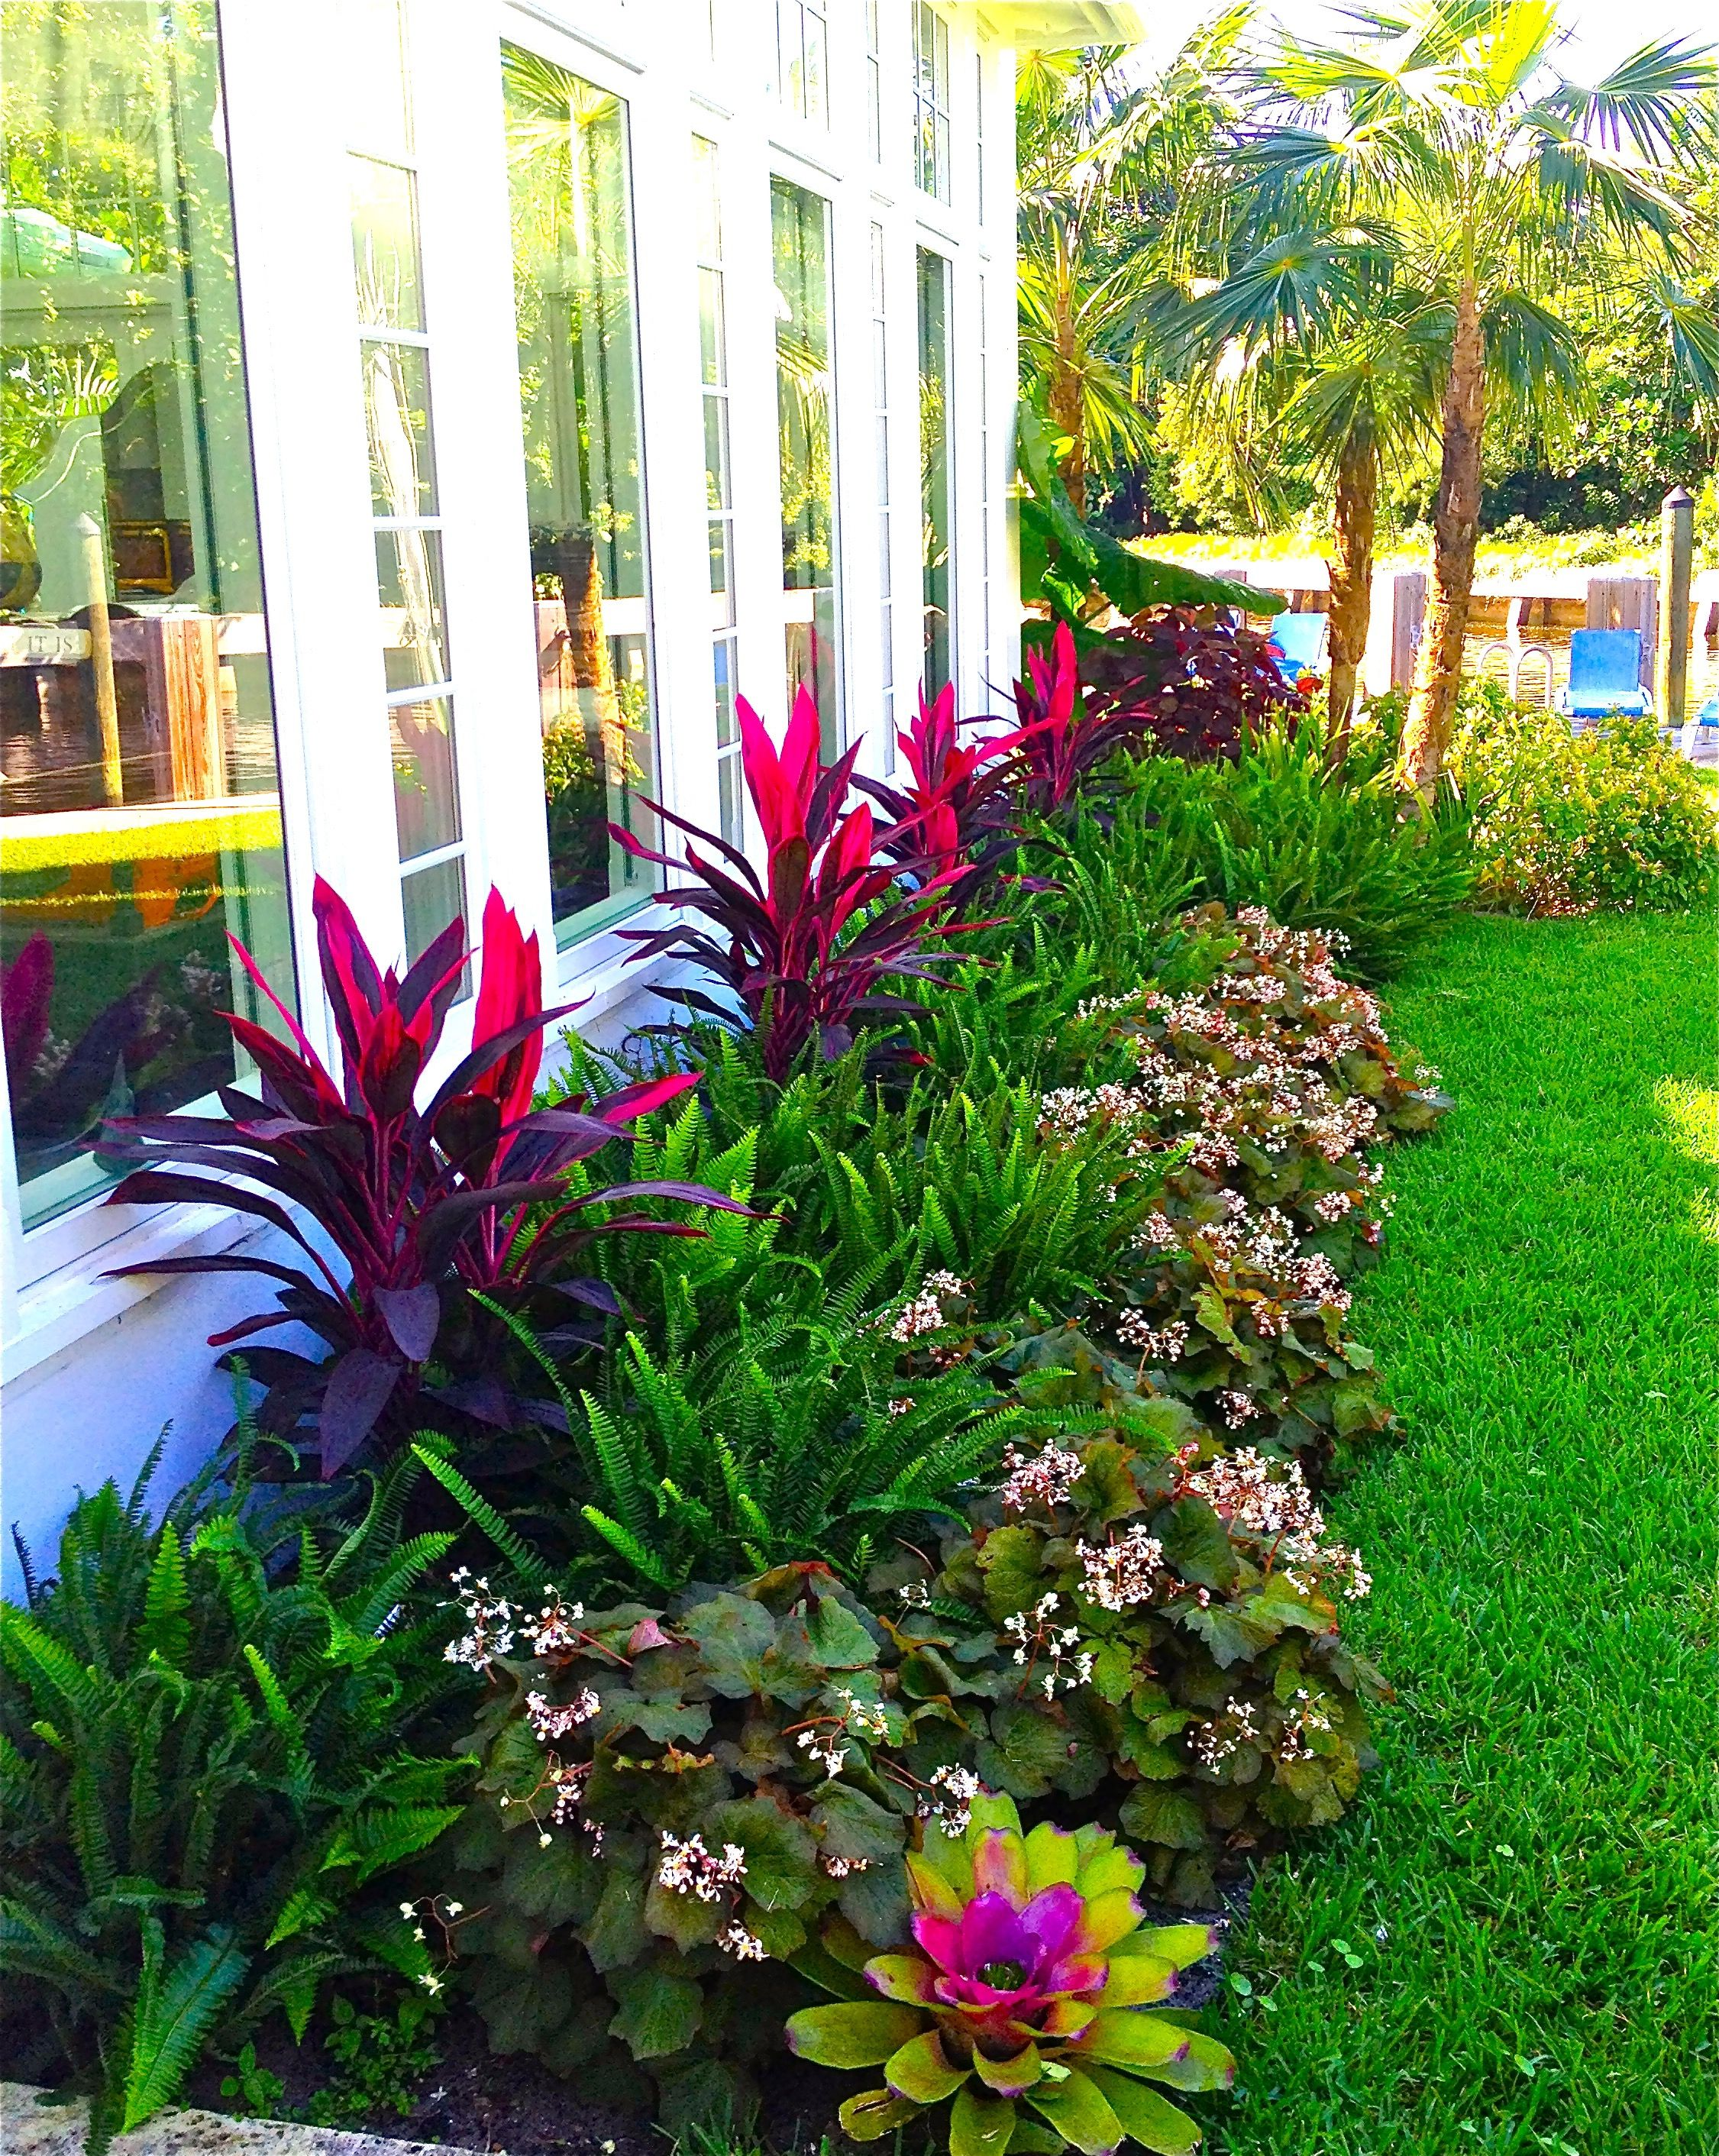 Stunning Way To Add Tropical Colors To Your Outdoor Landscaping Biophilic Design Pinterest